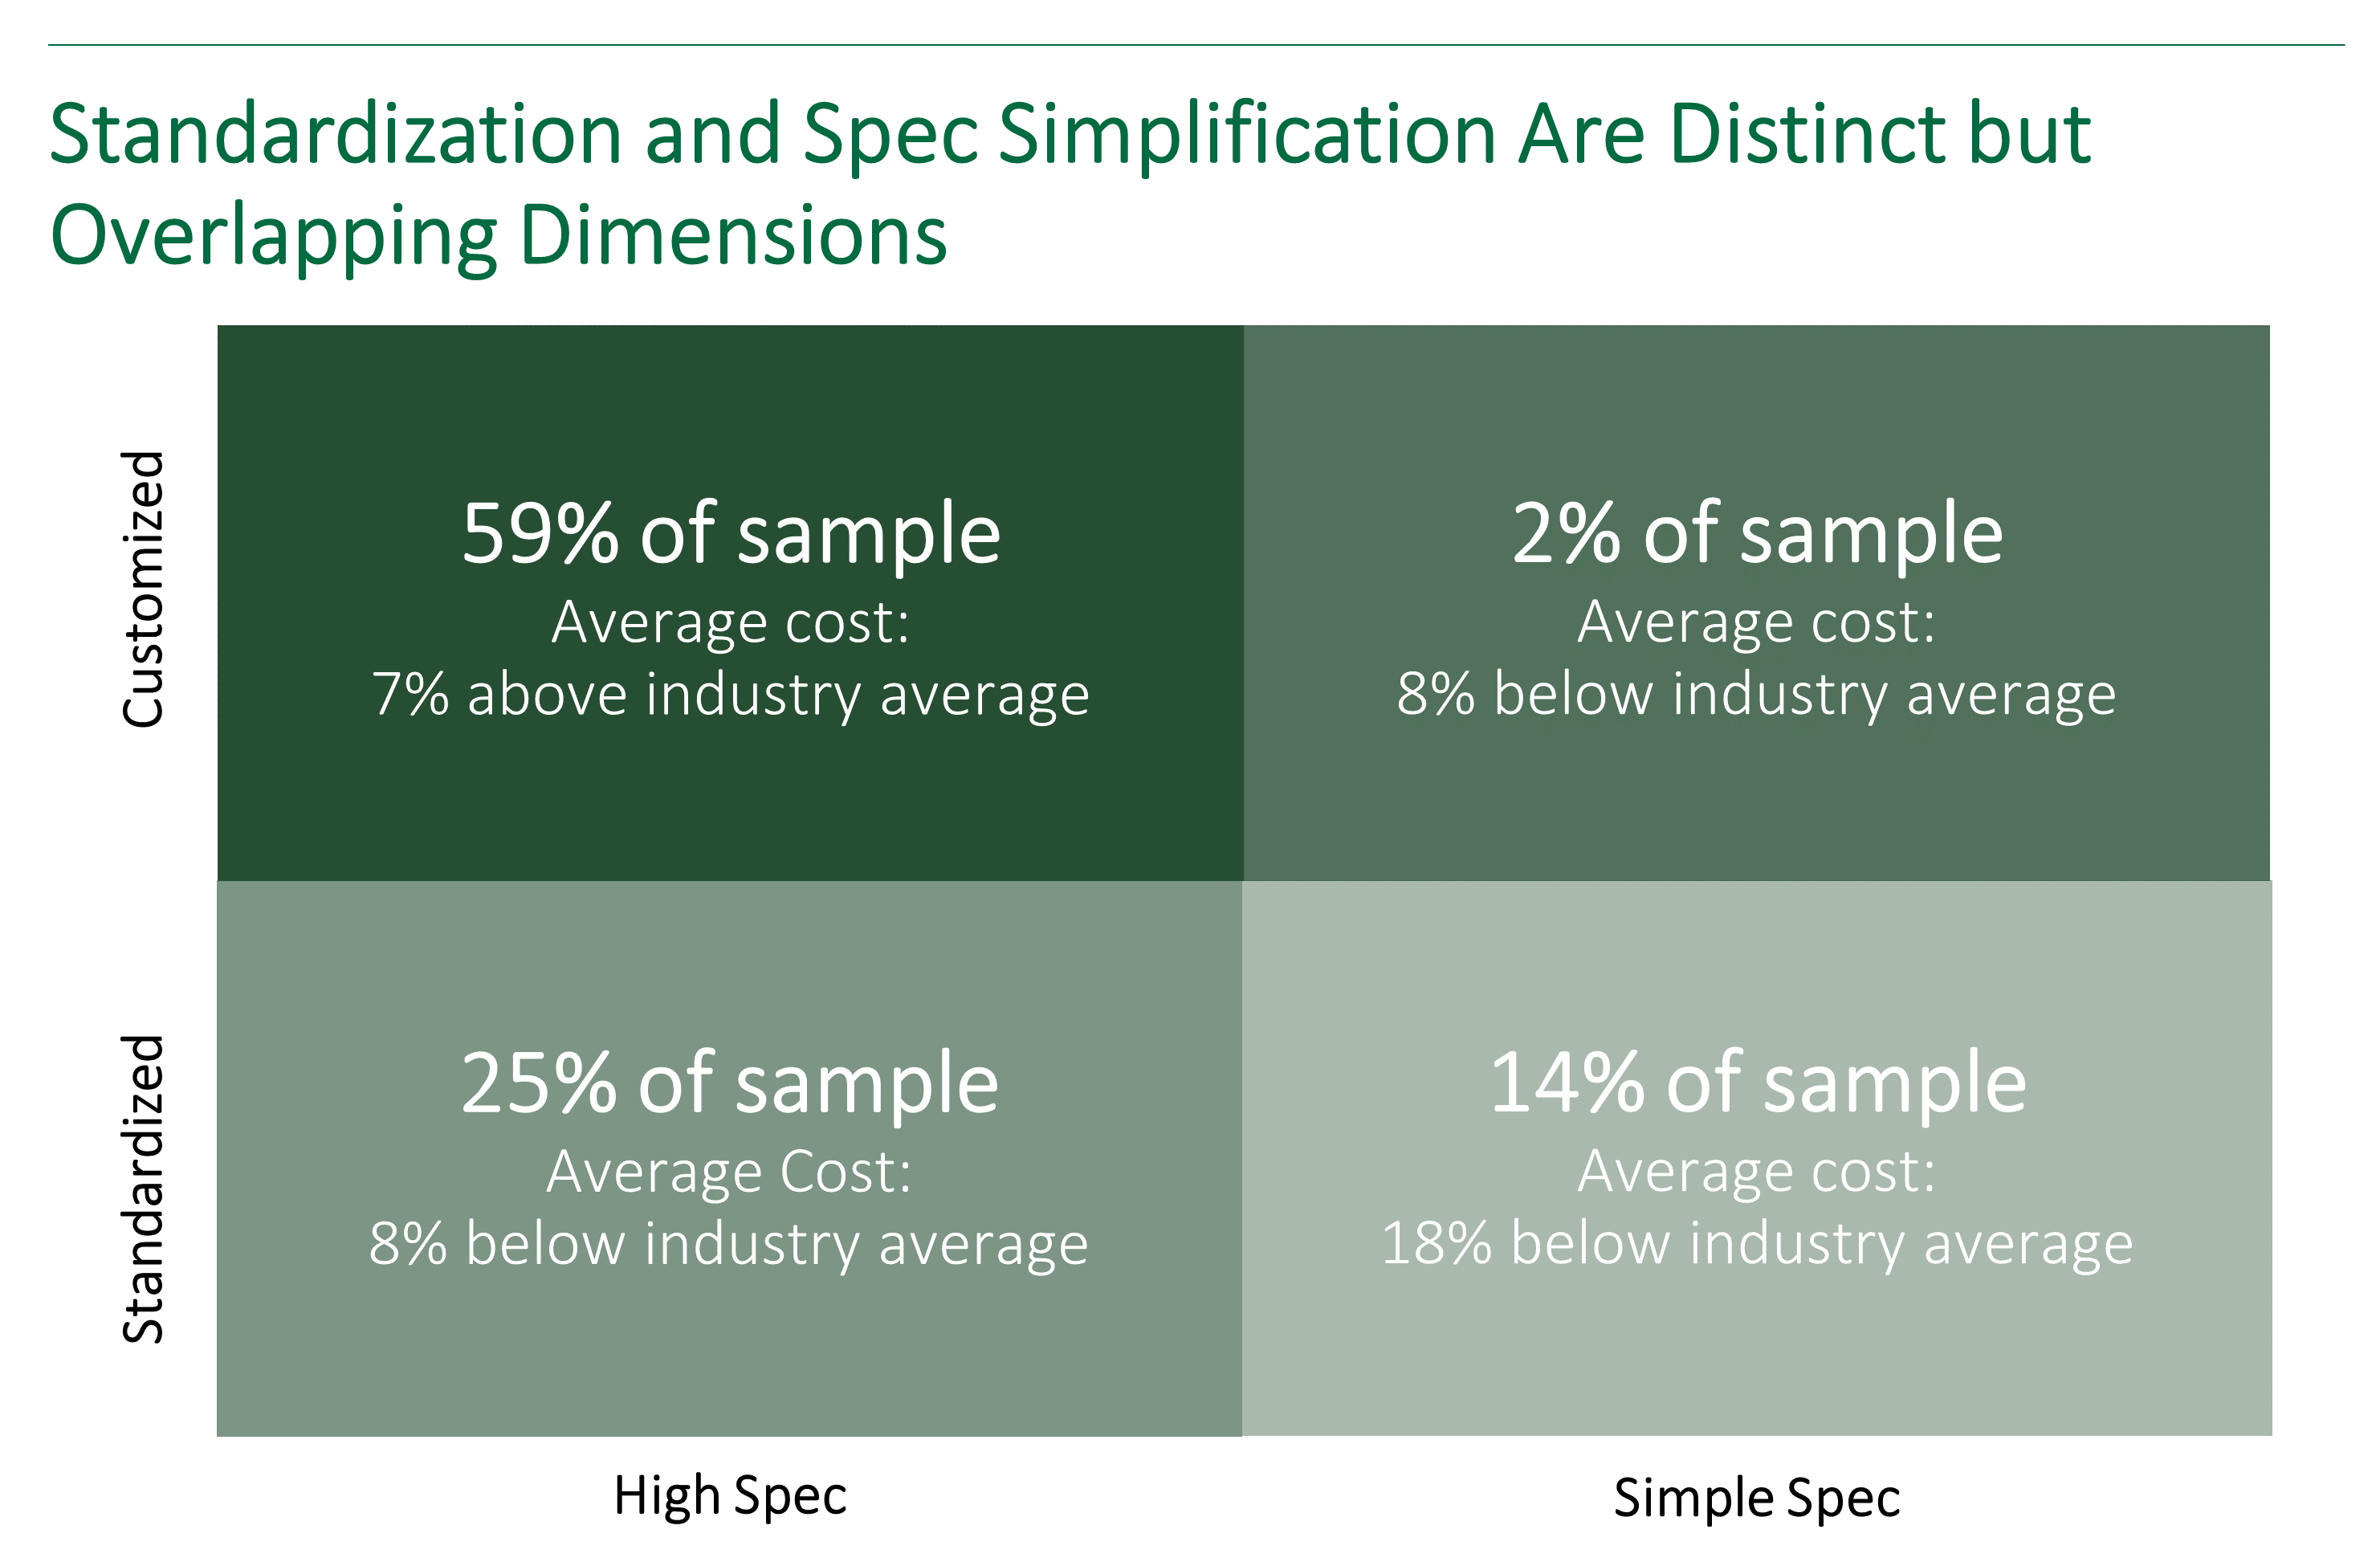 chart showing the overlap between standardization and spec simpilification as they relate to capital projects in the oil and gas industry.